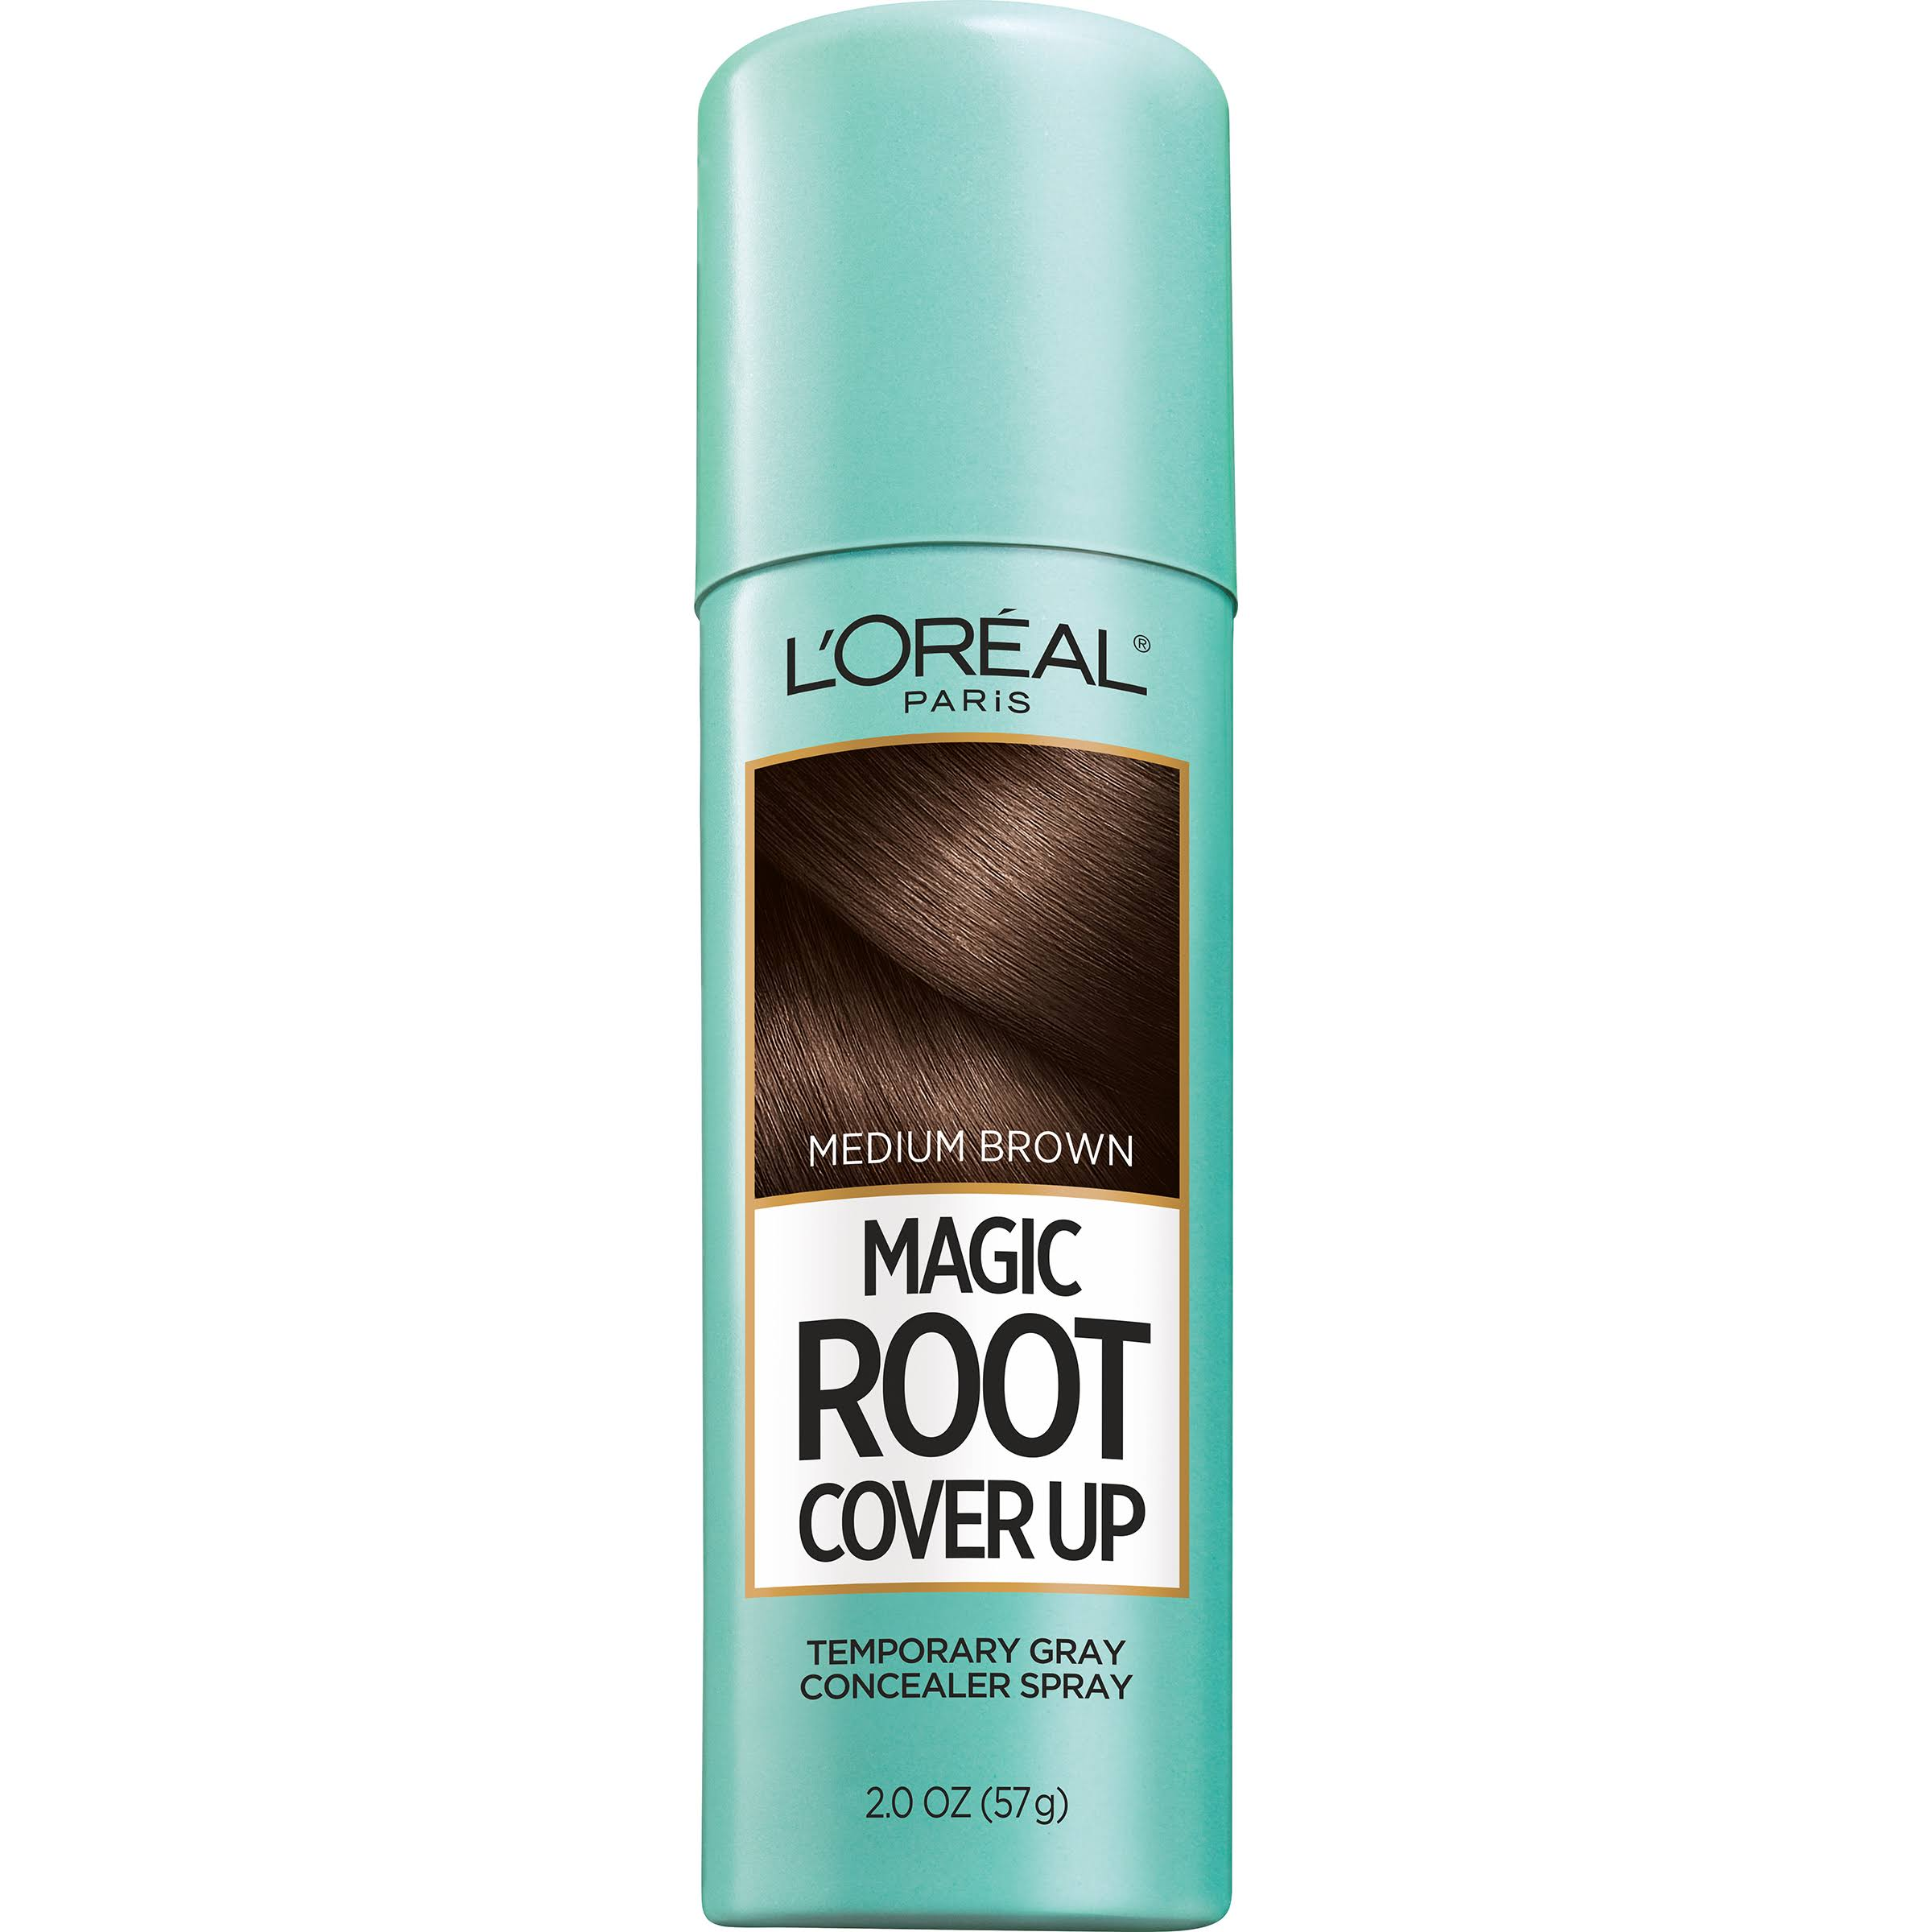 L'Oréal Paris Root Cover Up Temporary Gray Concealer Spray - Light to Medium Brown, 57g